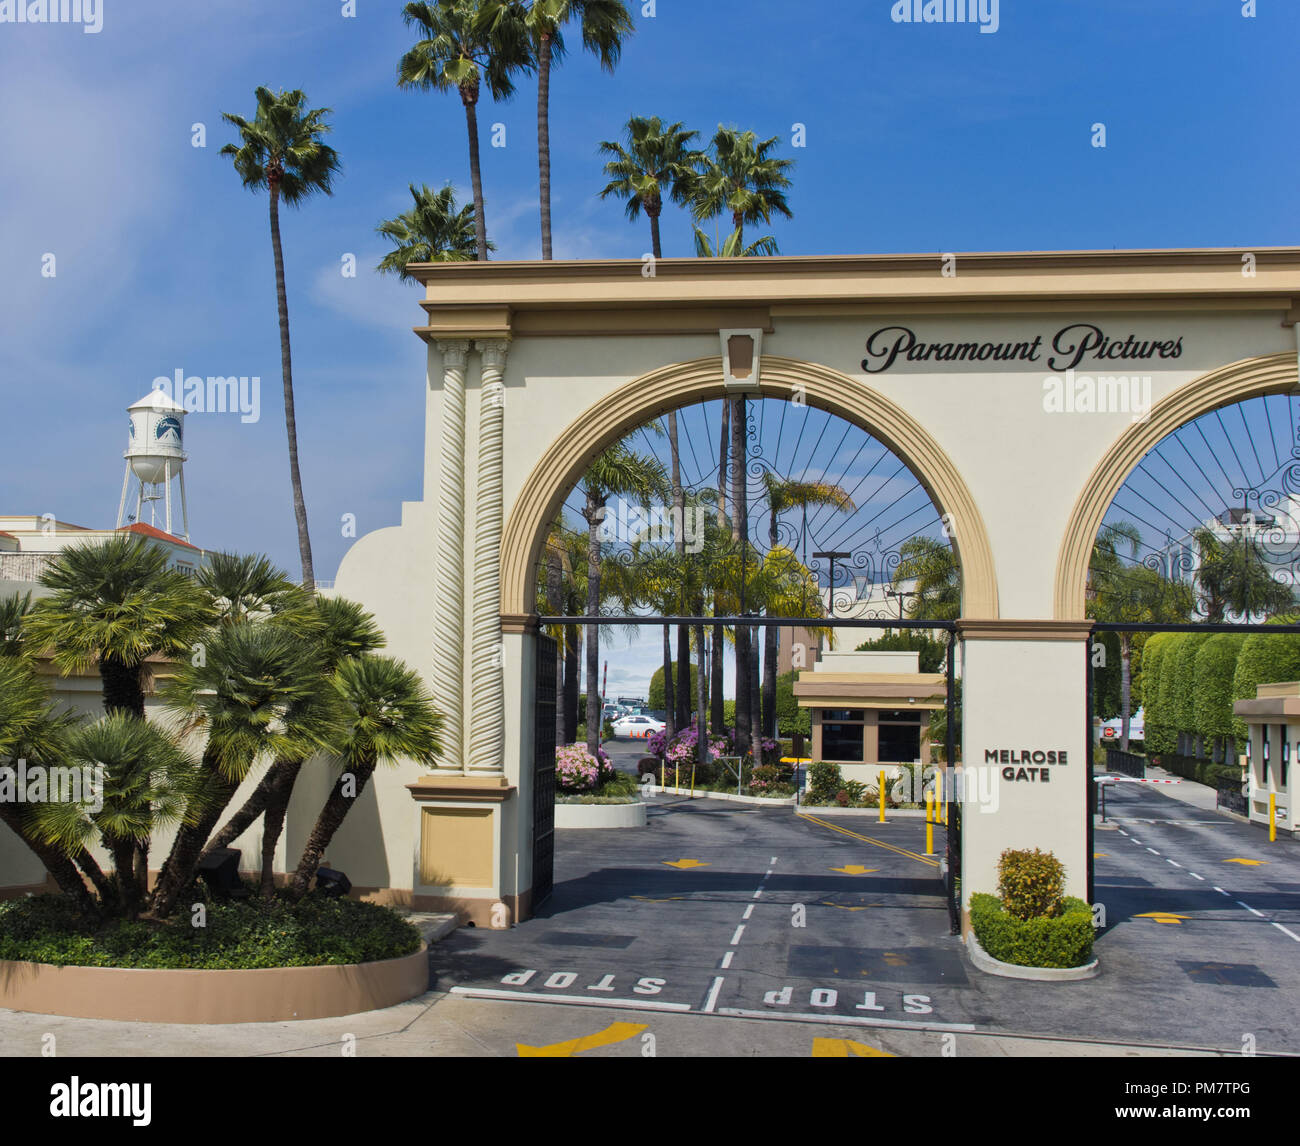 Paramount Pictures Studio, Hollywood 2011. File Reference # 31386_765THA - Stock Image